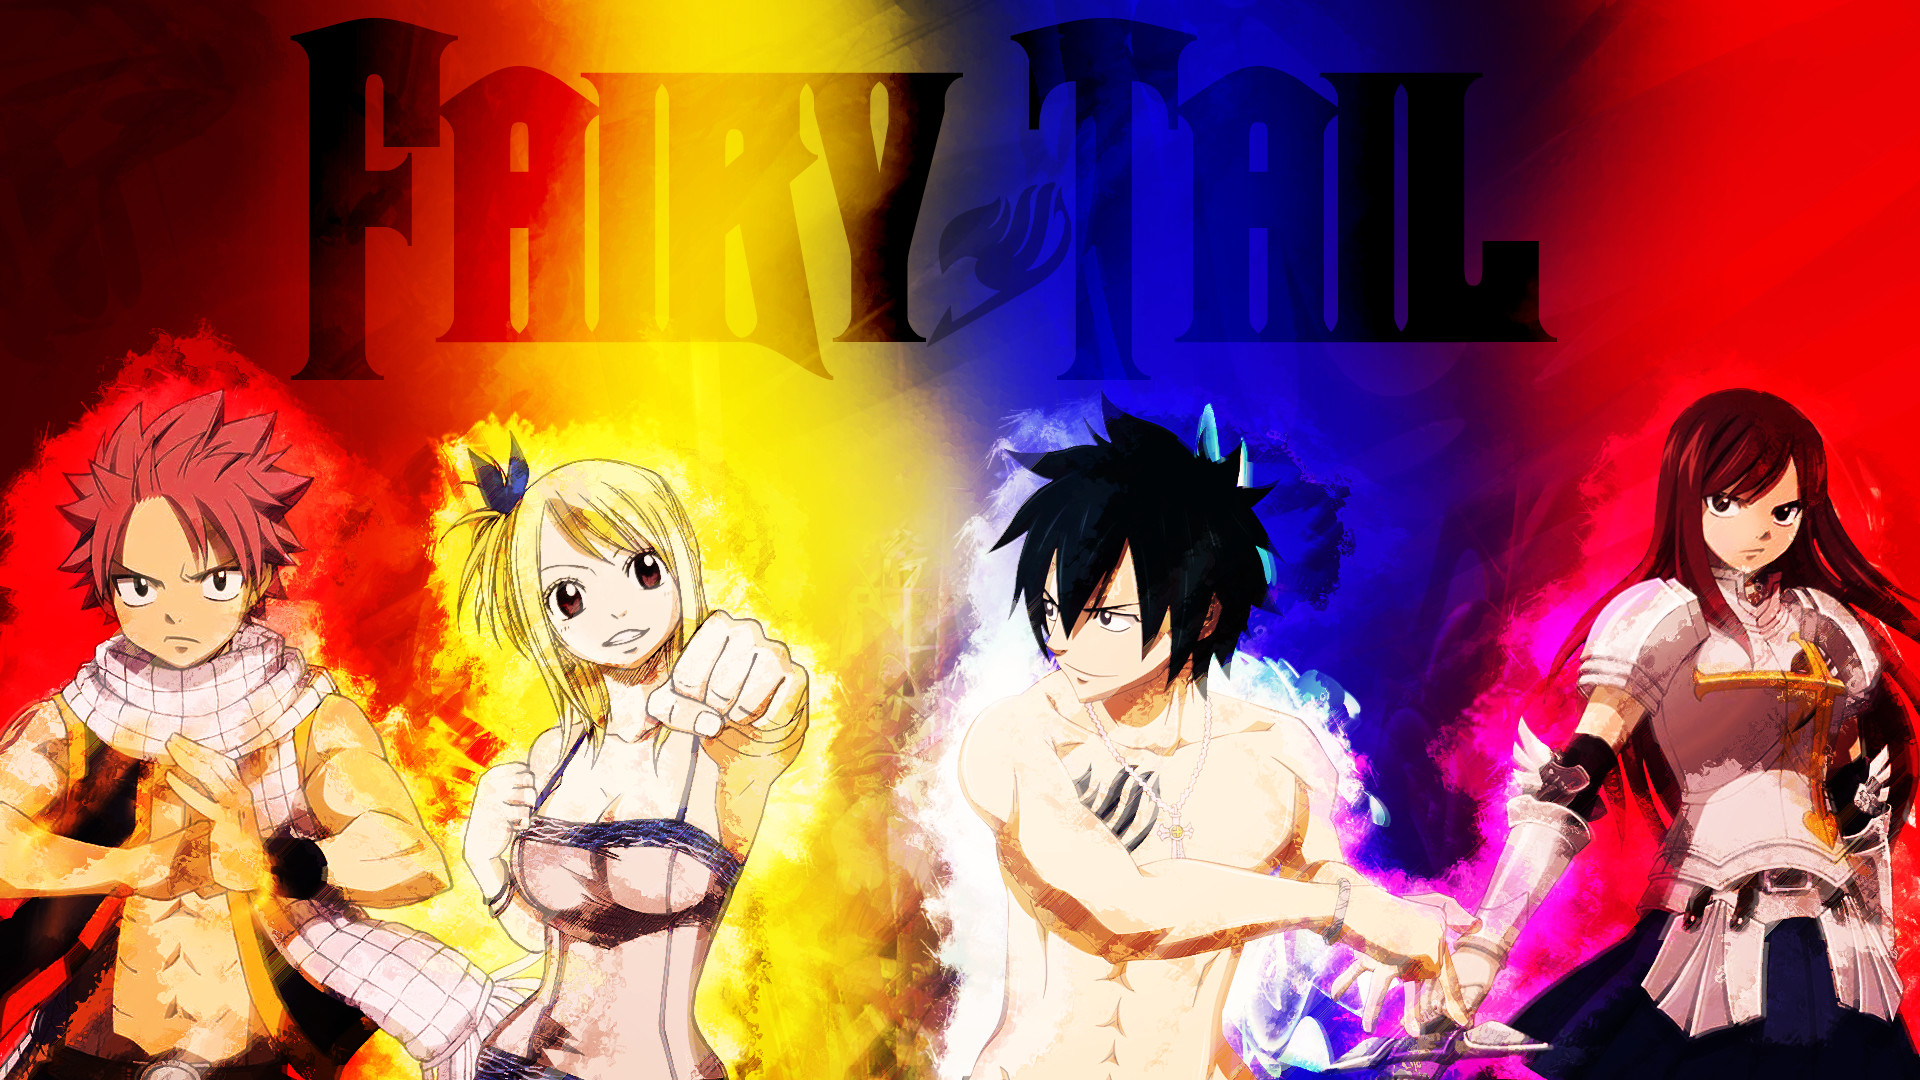 Res: 1920x1080, Fairy Tail wallpaper 17